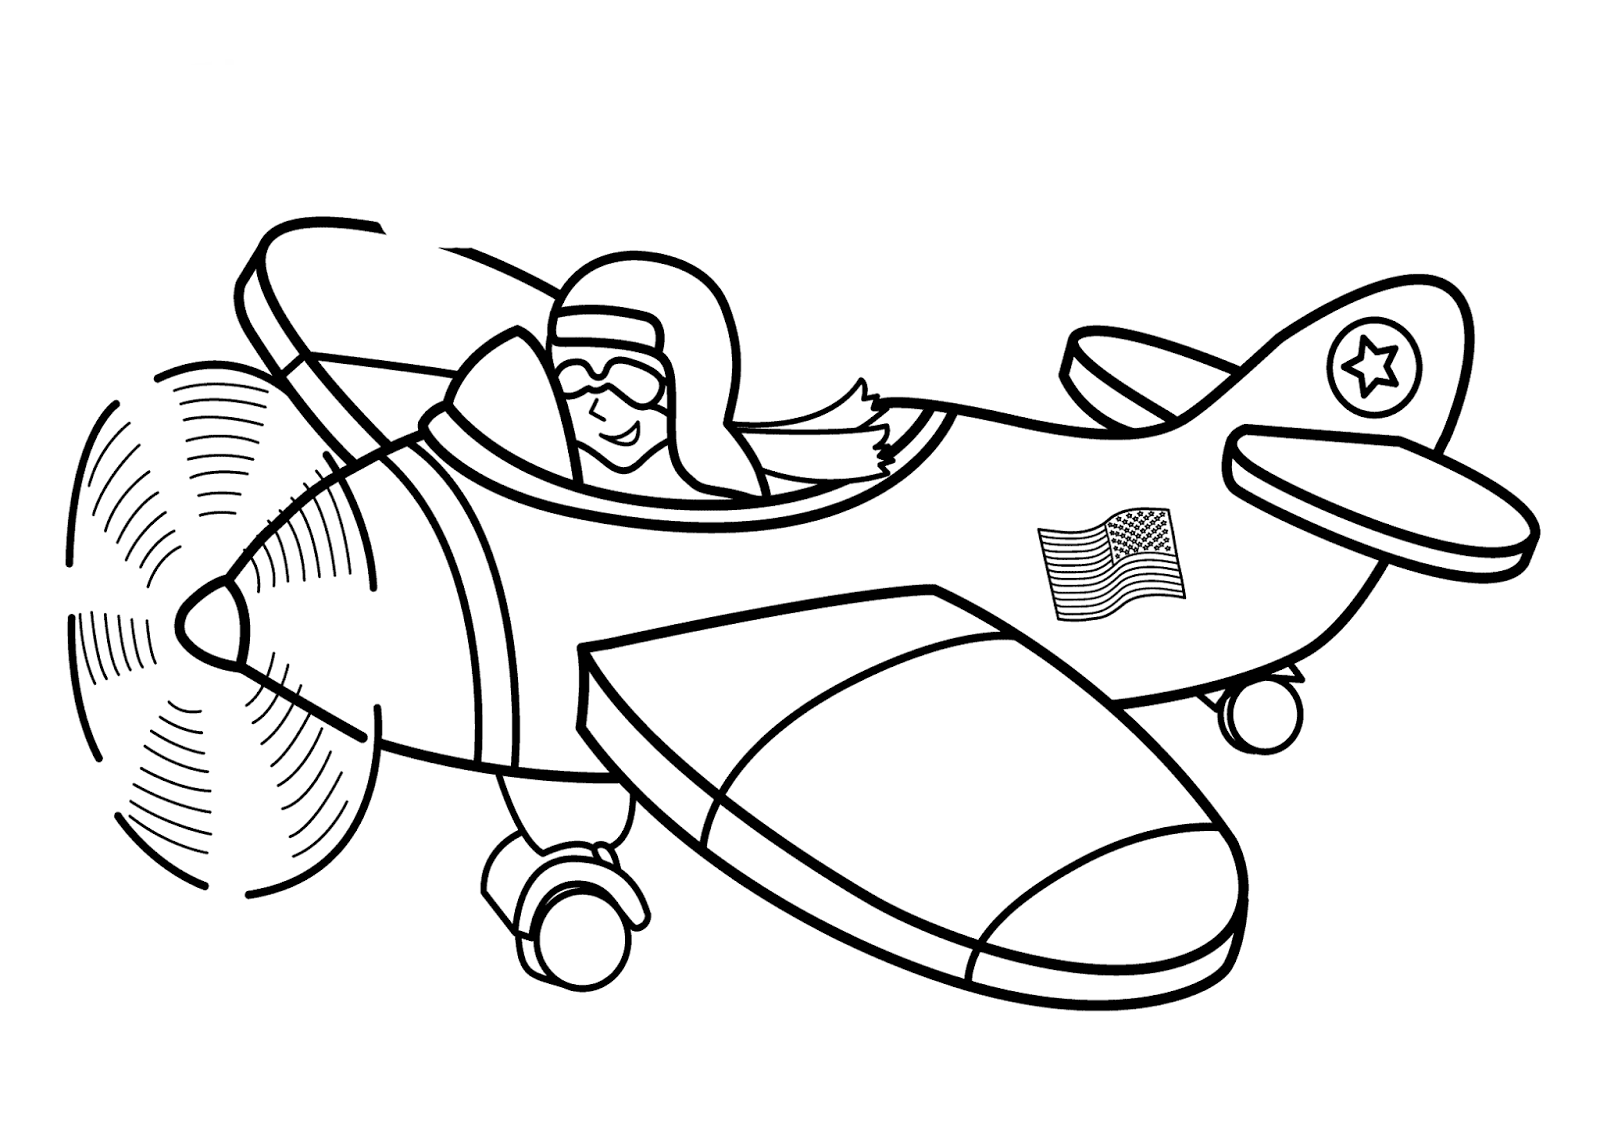 aviation coloring pages - photo#41